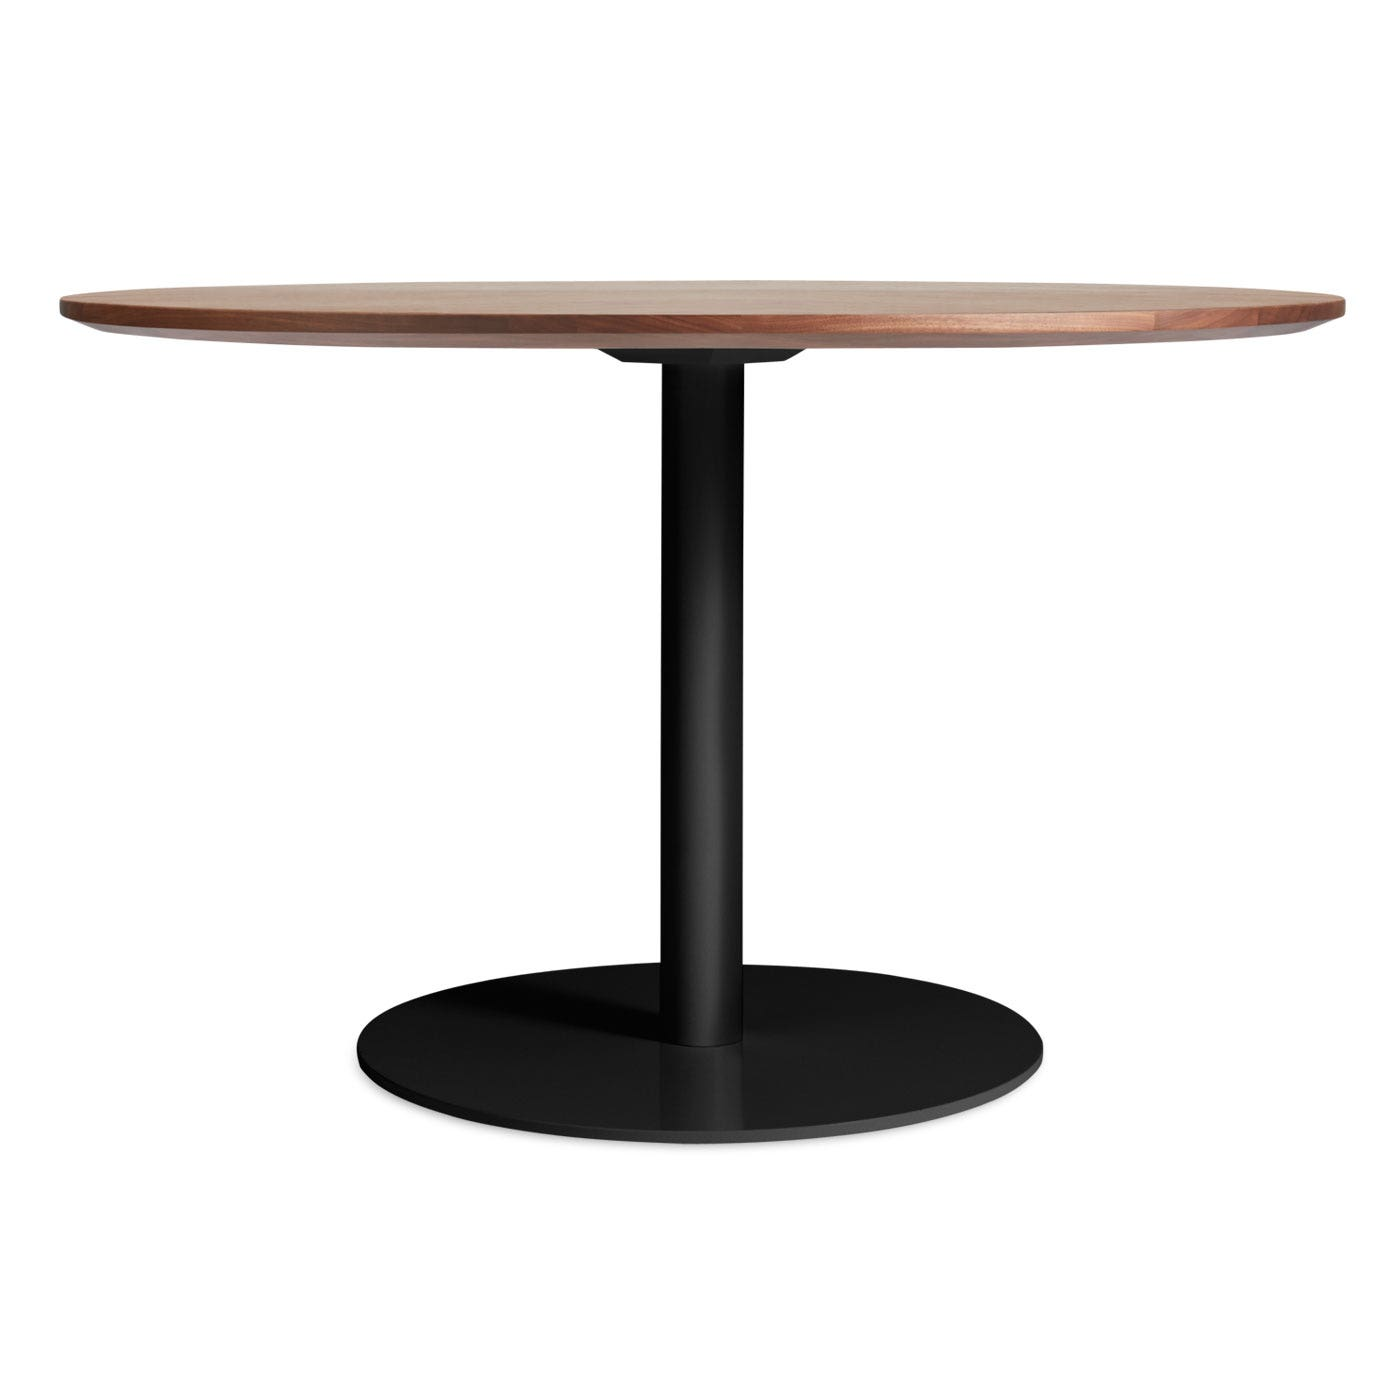 Pedestal Dining Table Easy Dining Table Modern Pedestal Dining Table Blu Dot